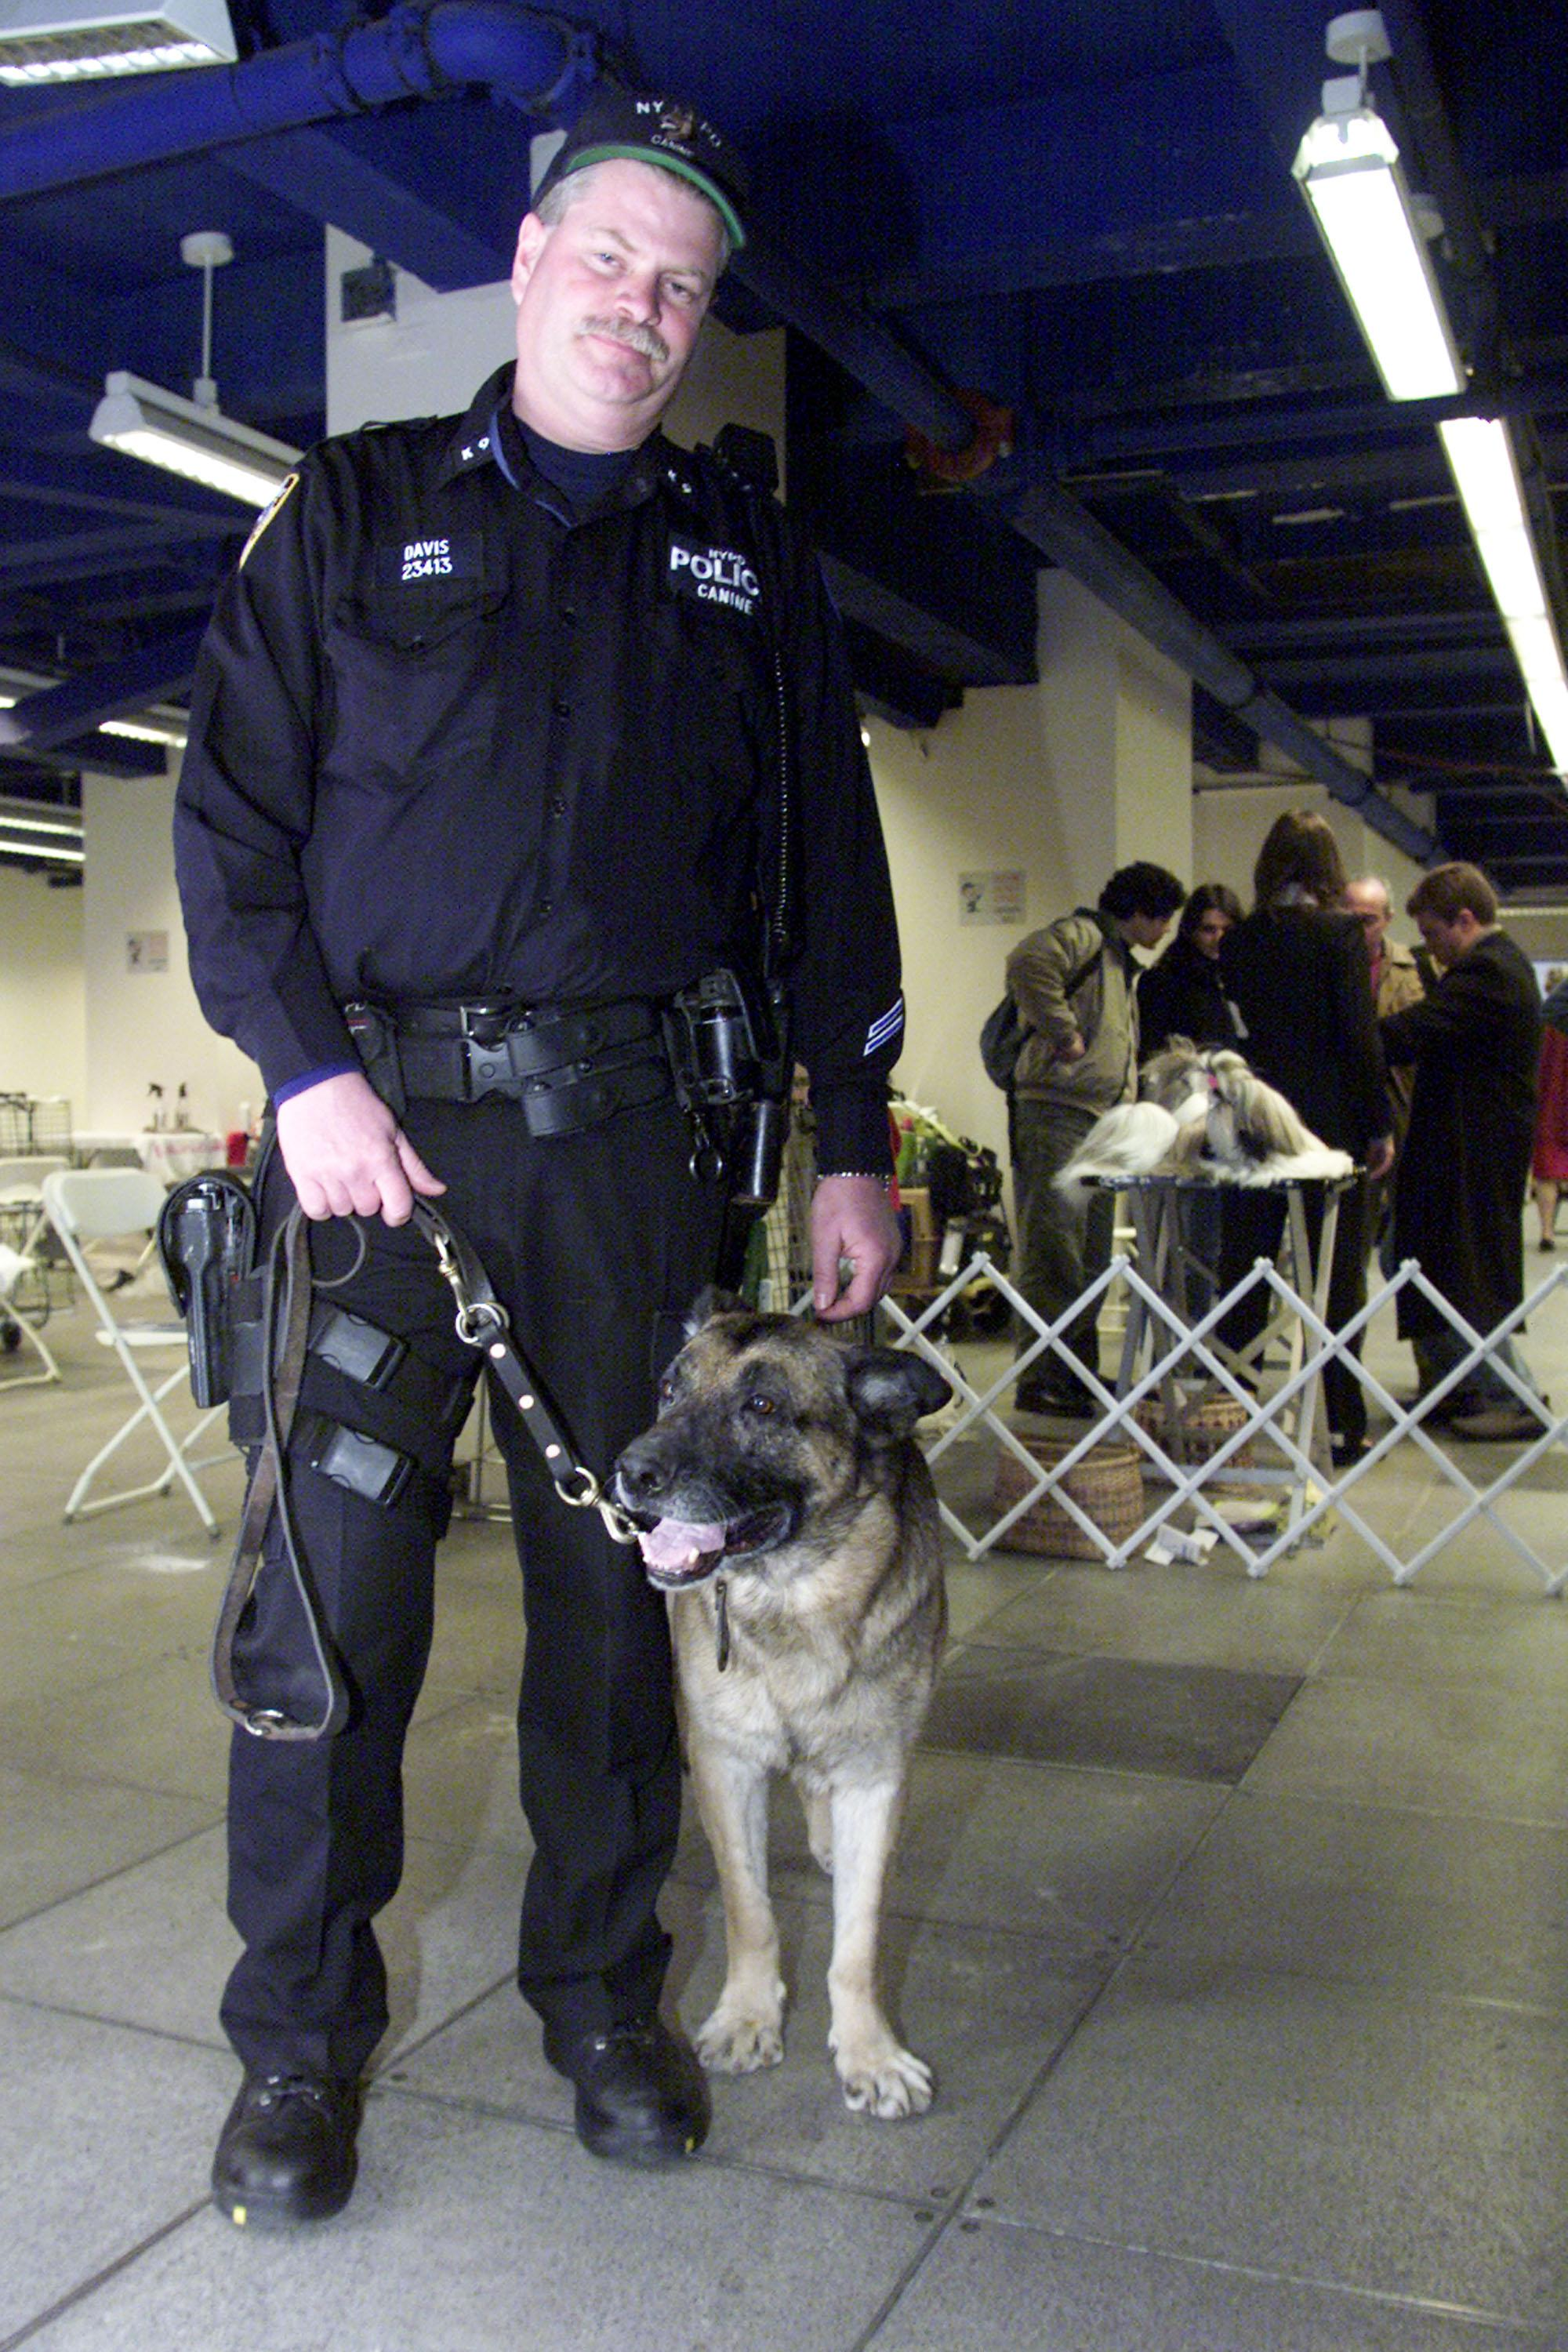 New York Police K-9 officer Peter Davis and his Search and Rescue dog, Apollo, attend the New York Specialty Dog Show February 9, 2002 in New York City. Officer Davis and Apollo were the first Search and Rescue dog crew on site after the collapse of the World Trade Center September 11, 2001 in New York. Officer Davis and Apollo received the Langden Sarter award from the American Kenel Club (AKC). A check for $400,000 was given from the AKC to the Federal Emergency Management Agency (FEMA) for studies on the health affects of exposure to the site on dogs like Apollo. (Photo by George Best/Getty Images)